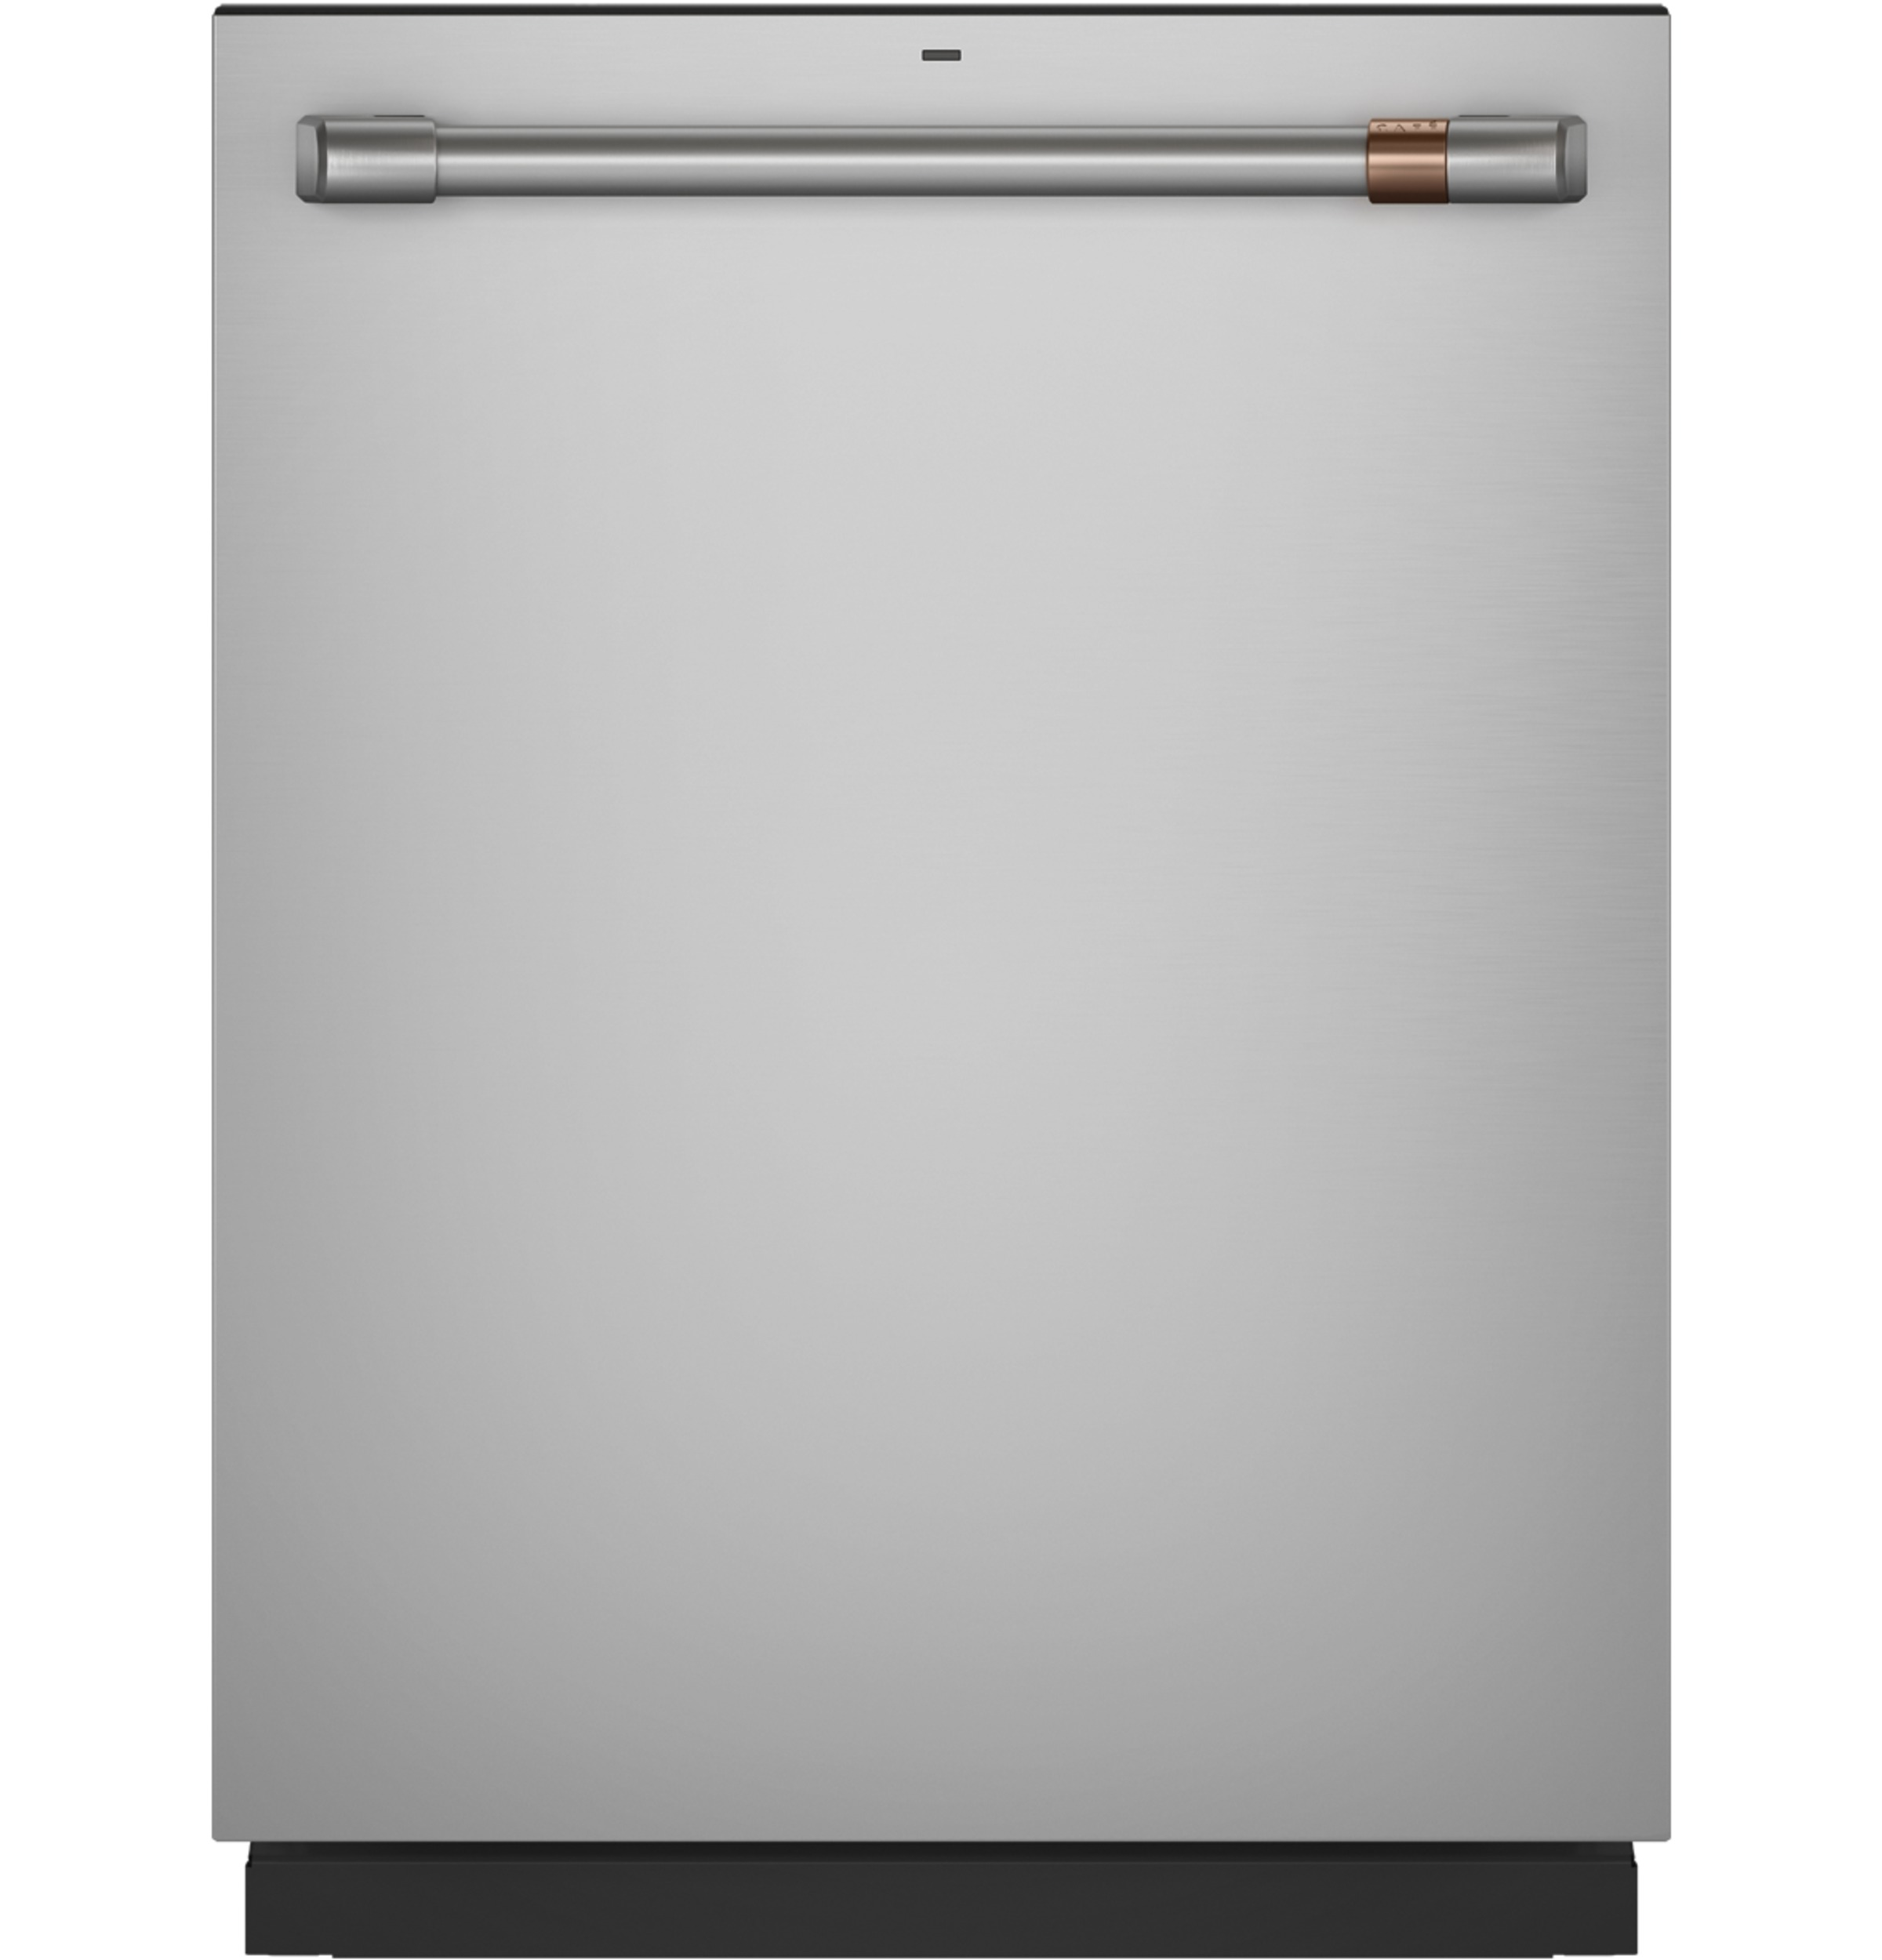 Cafe Café™ Stainless Interior Built-In Dishwasher with Hidden Controls